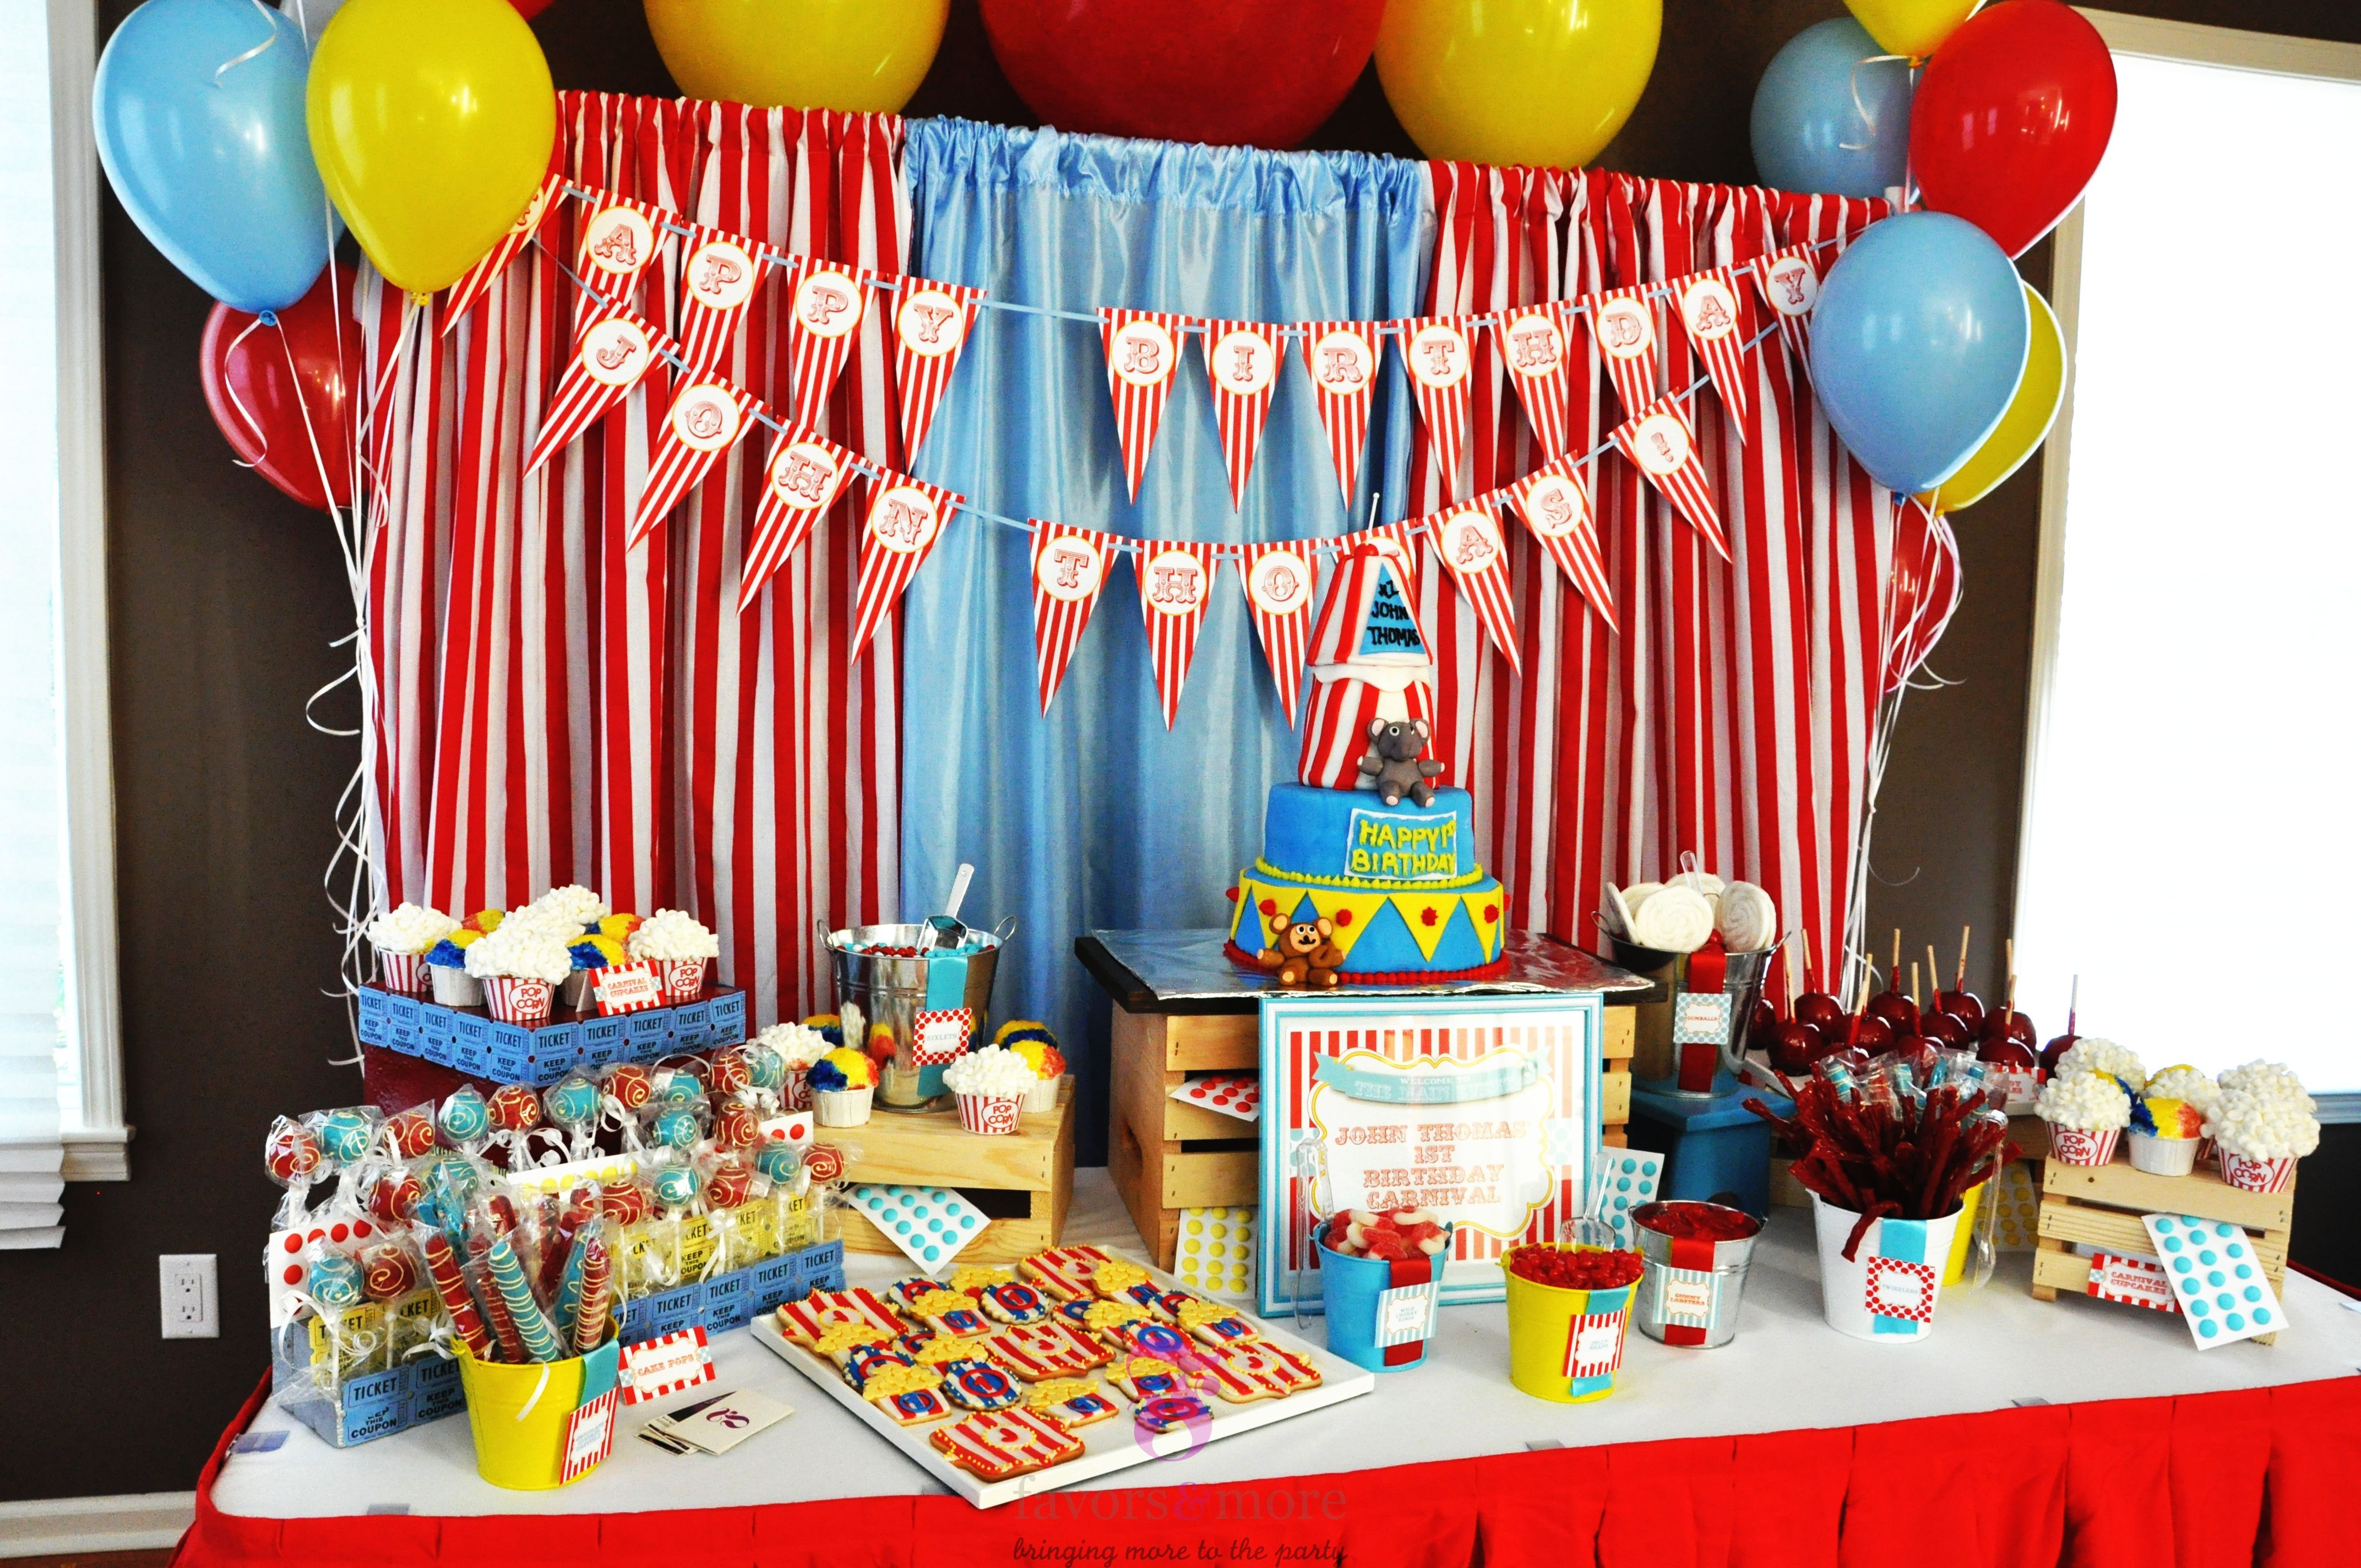 Best ideas about Carnival Birthday Party Ideas . Save or Pin 15 Best Carnival Birthday Party Ideas Now.